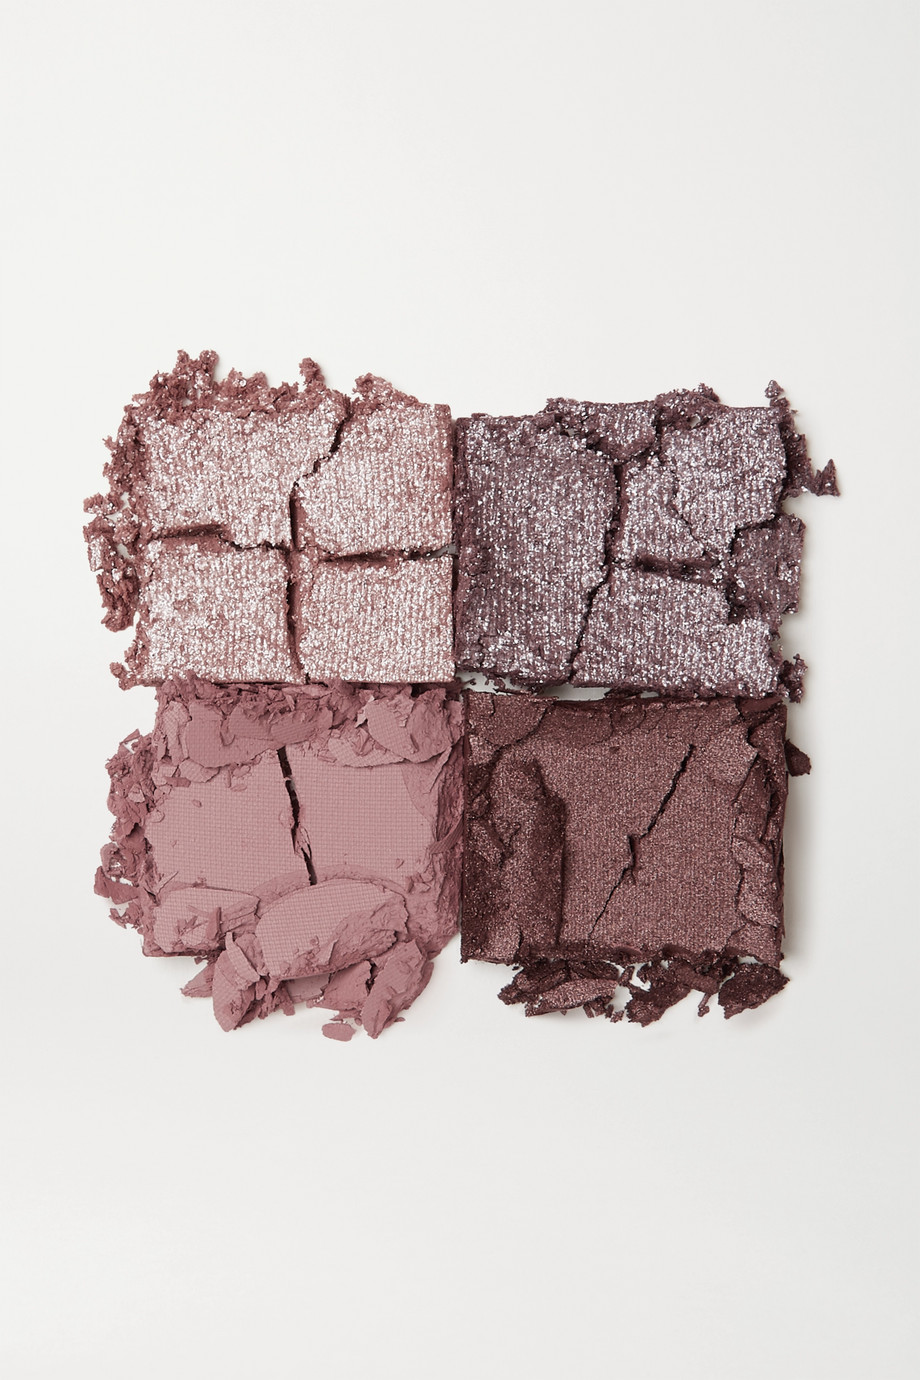 TOM FORD BEAUTY Eye Color Quad - Meteoric